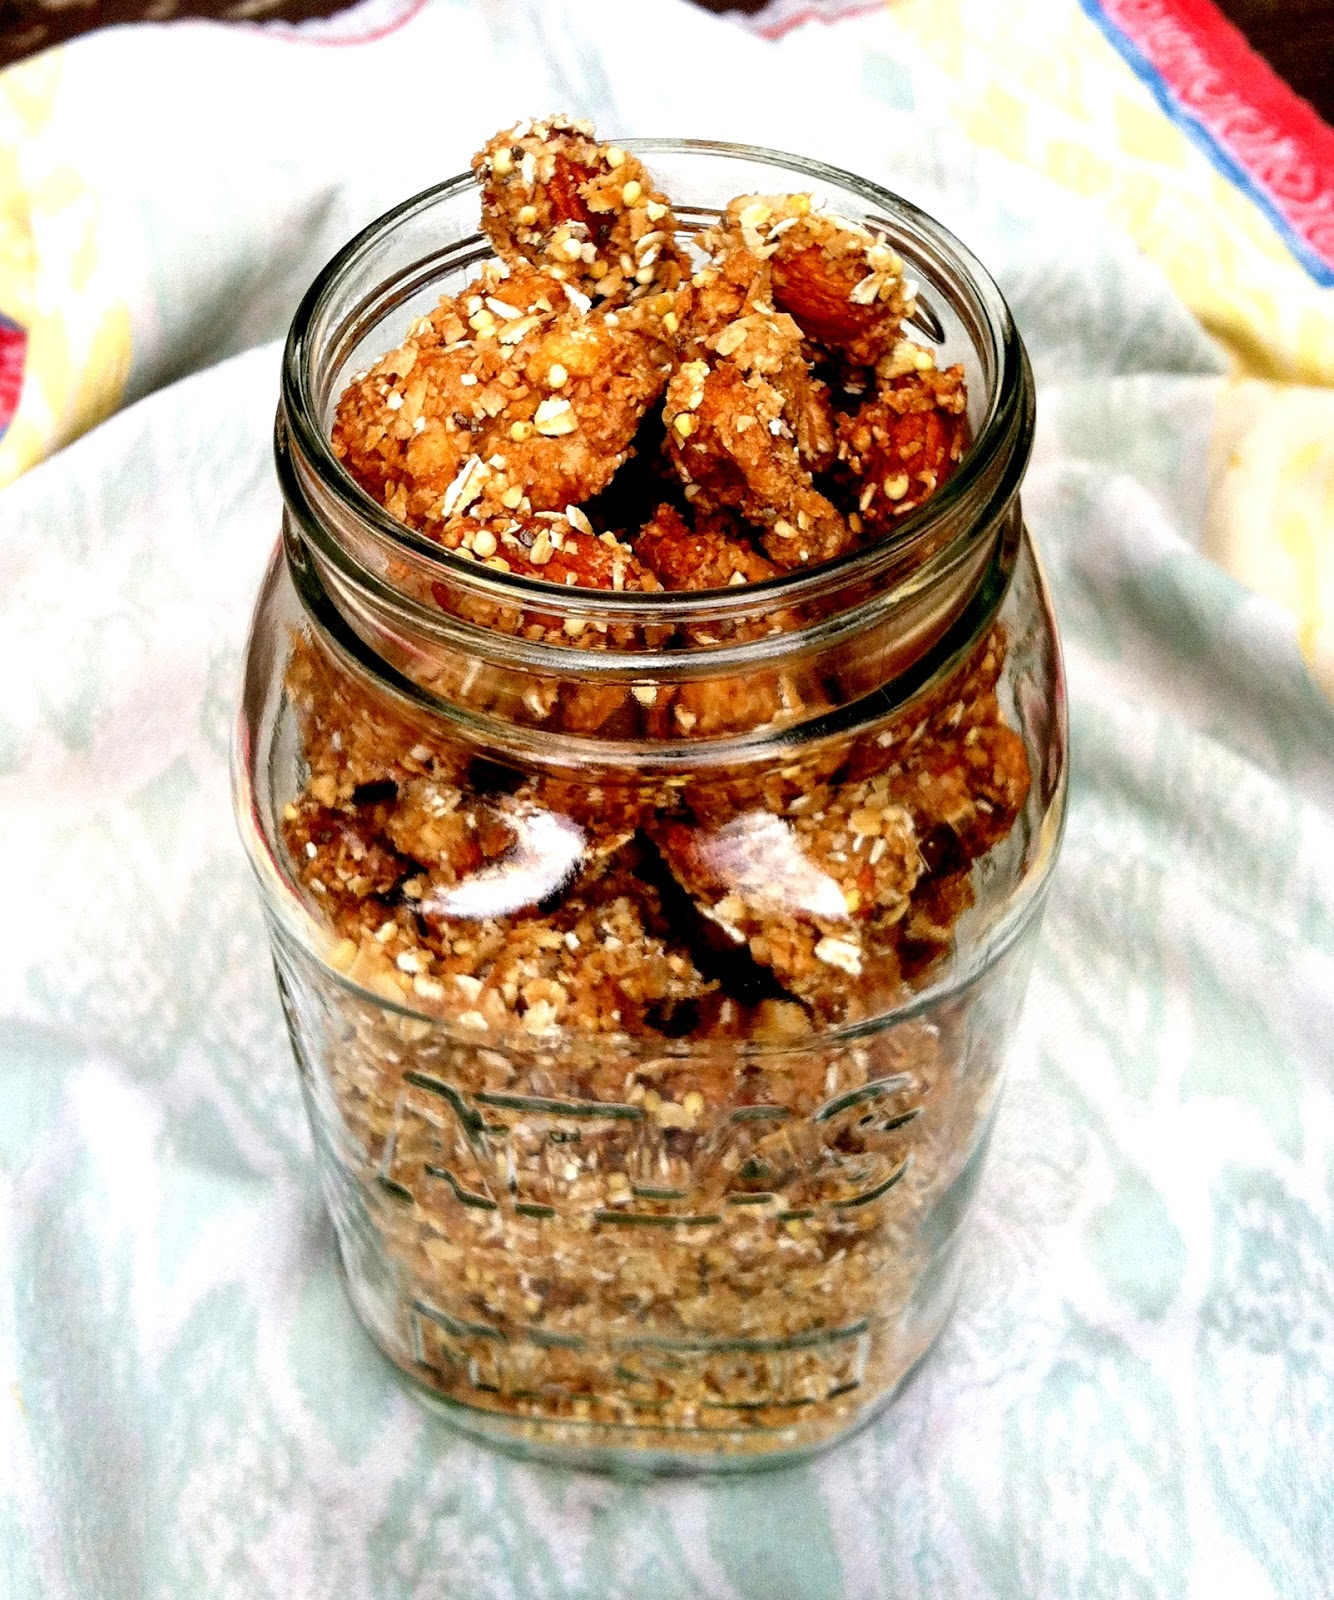 granola crusted nuts